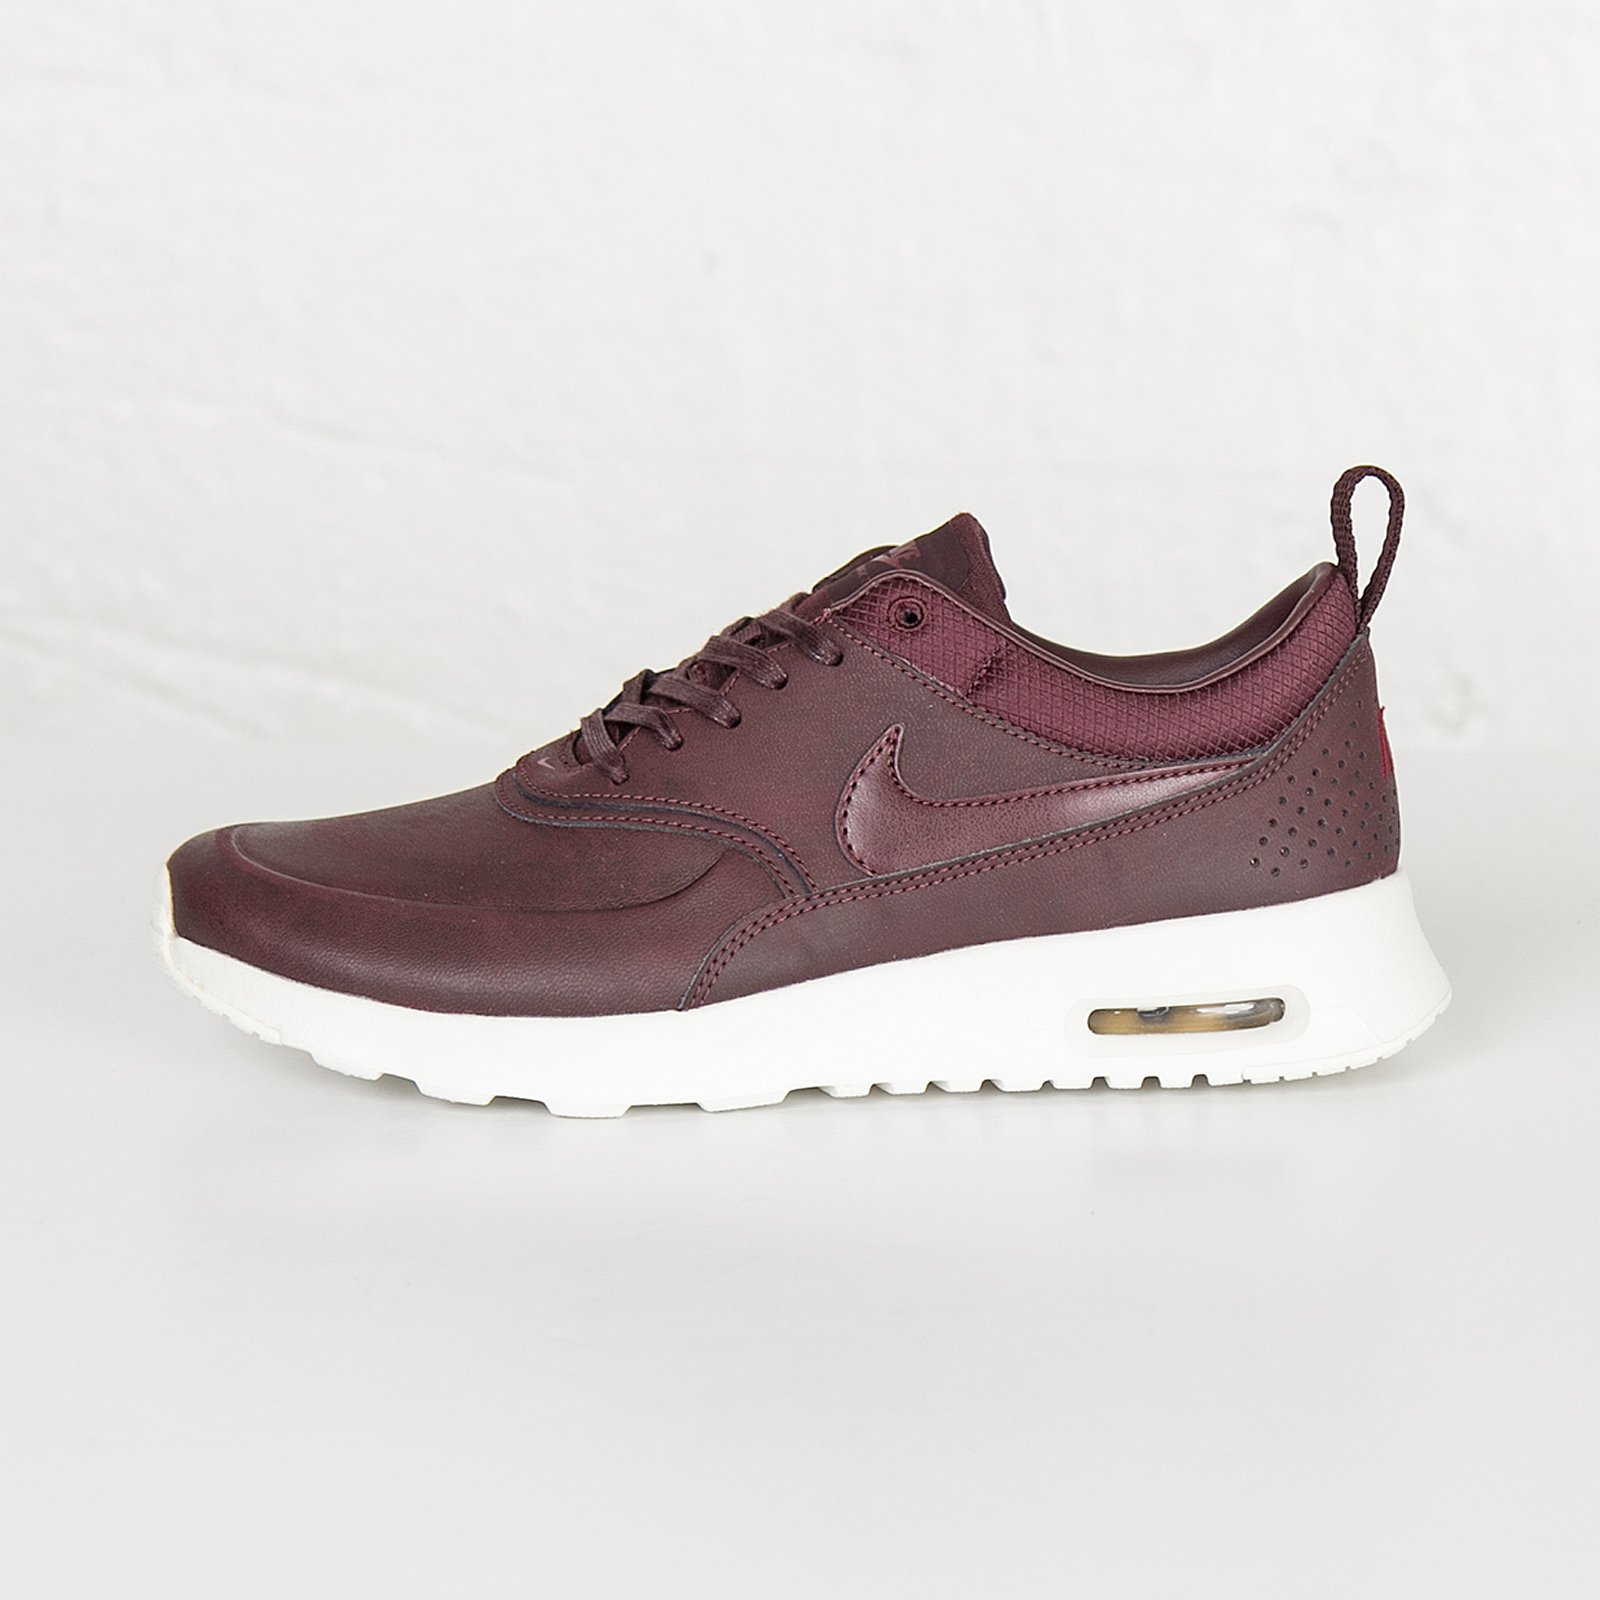 huge selection of 9afc9 1e376 Nike Wmns Air Max Thea Premium - 616723-200 - Sneakersnstuff   sneakers    streetwear online since 1999